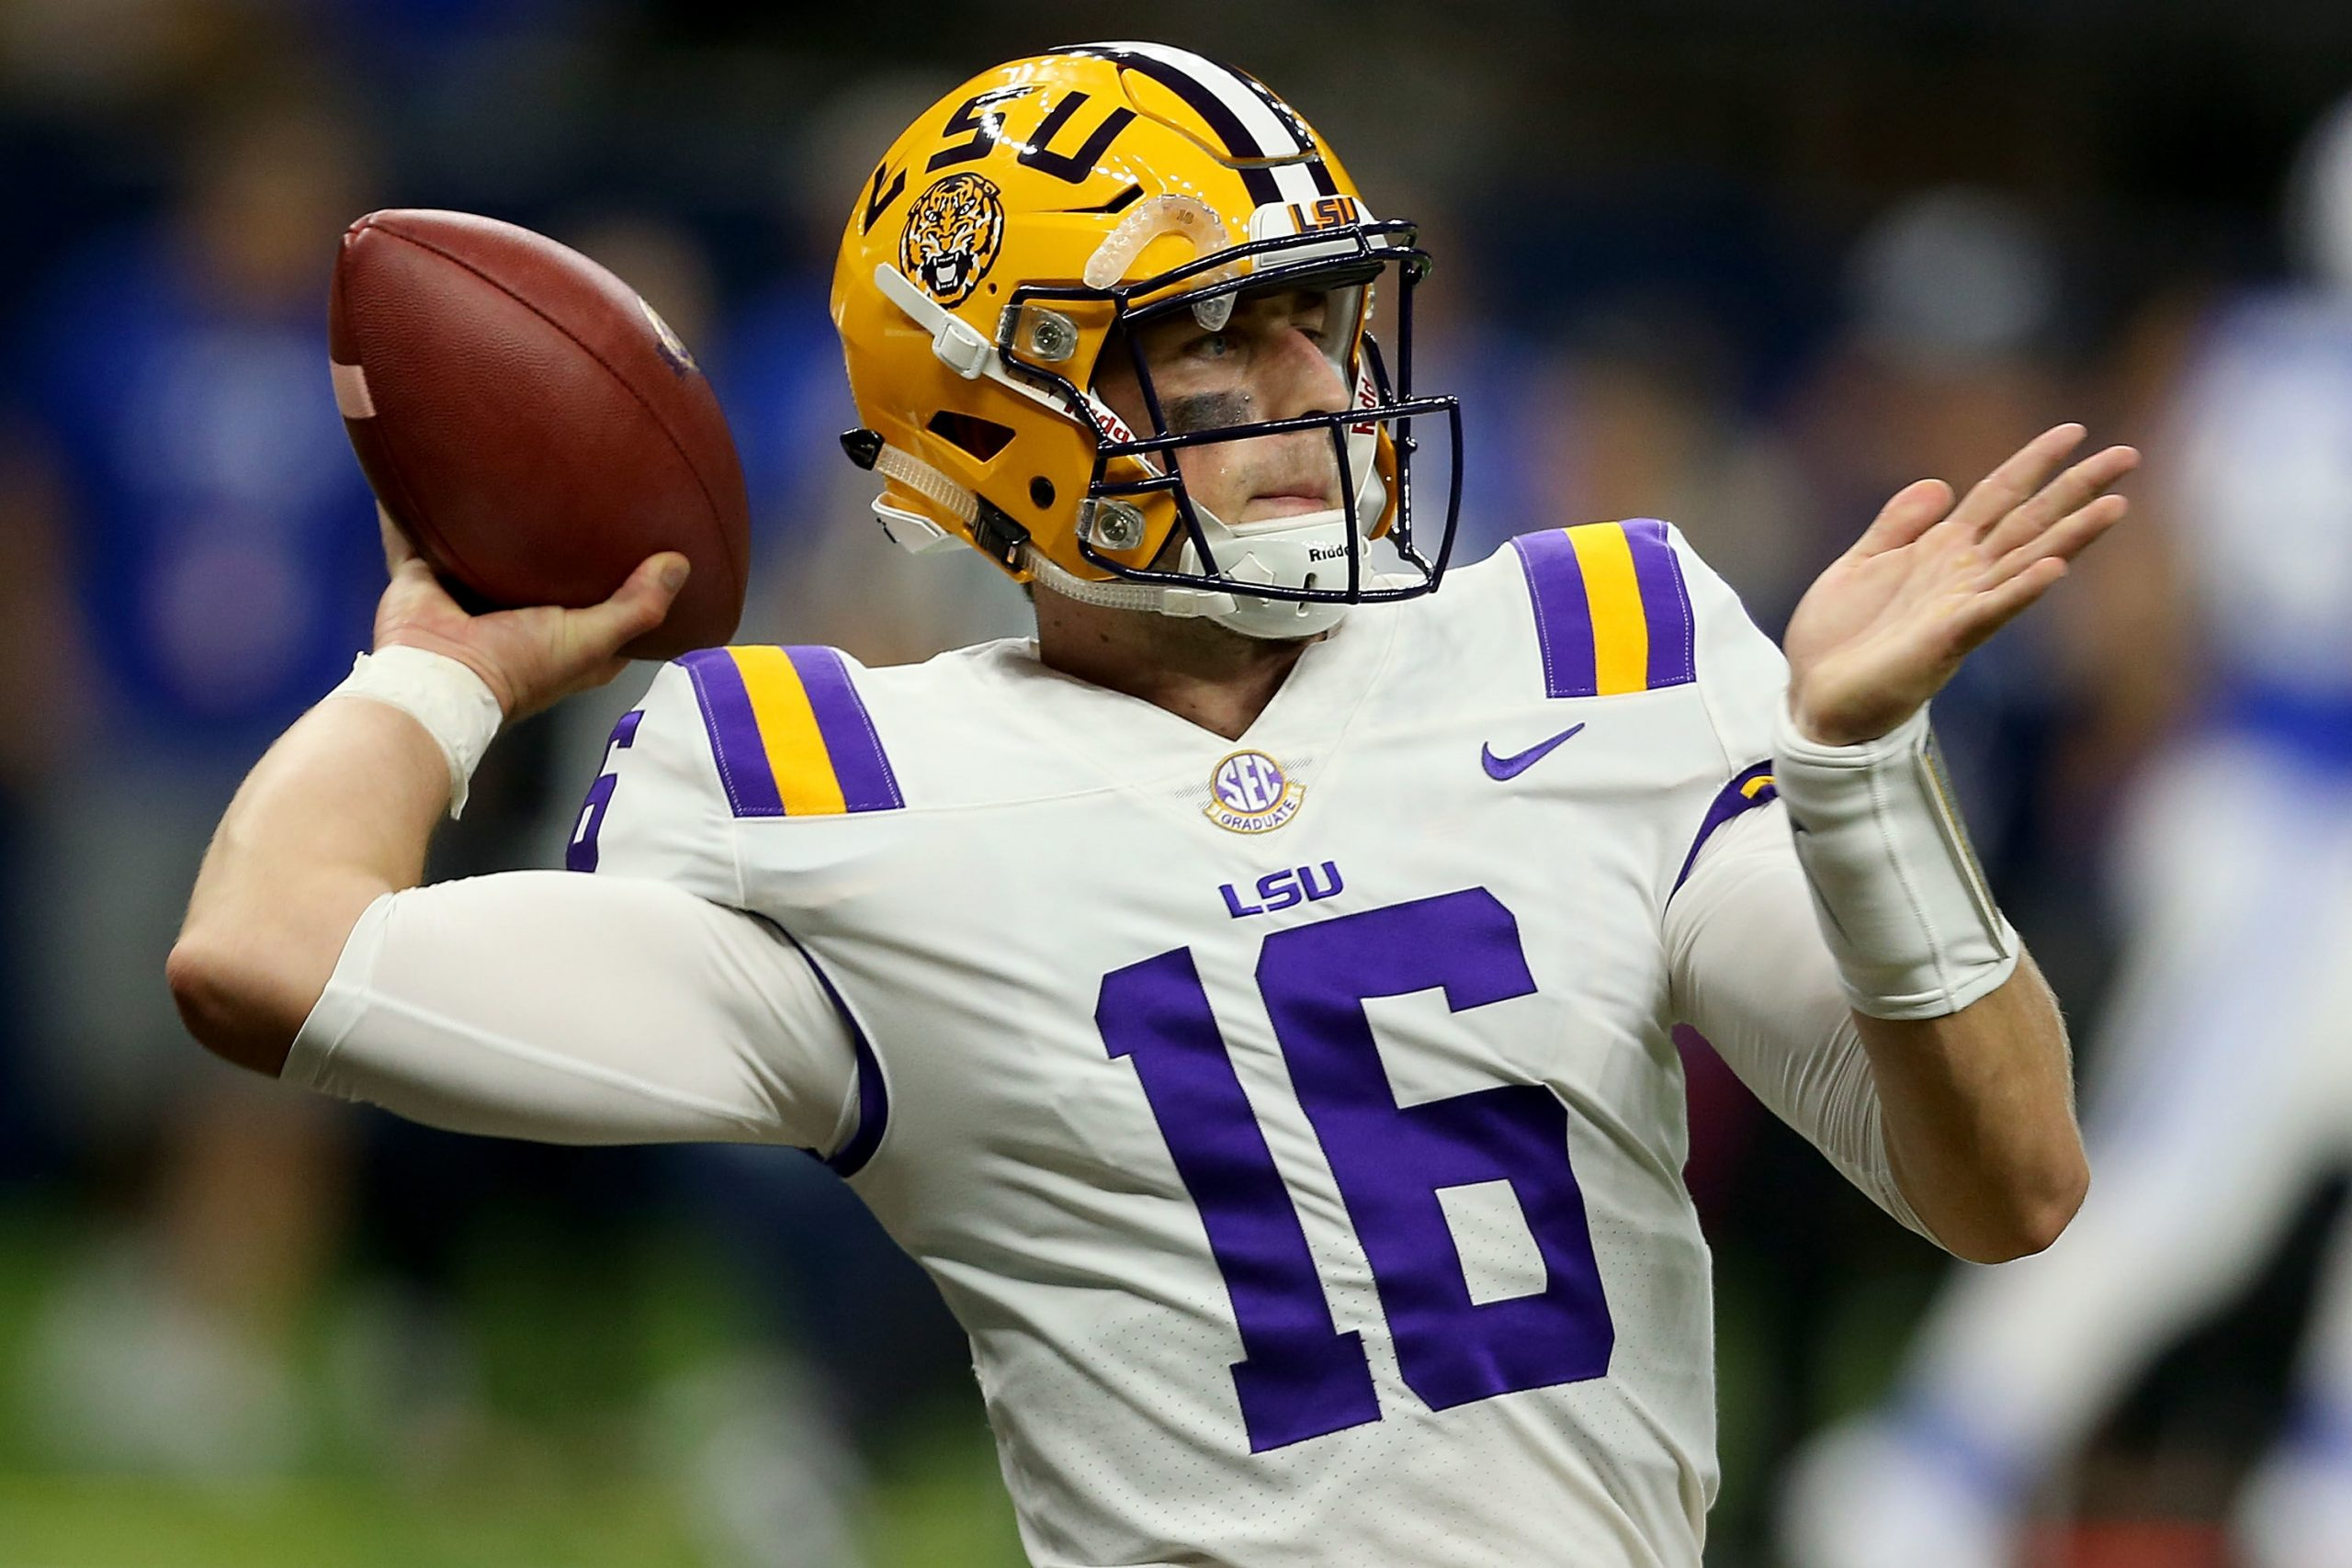 Preview: LSU faces Chattanooga in home opener